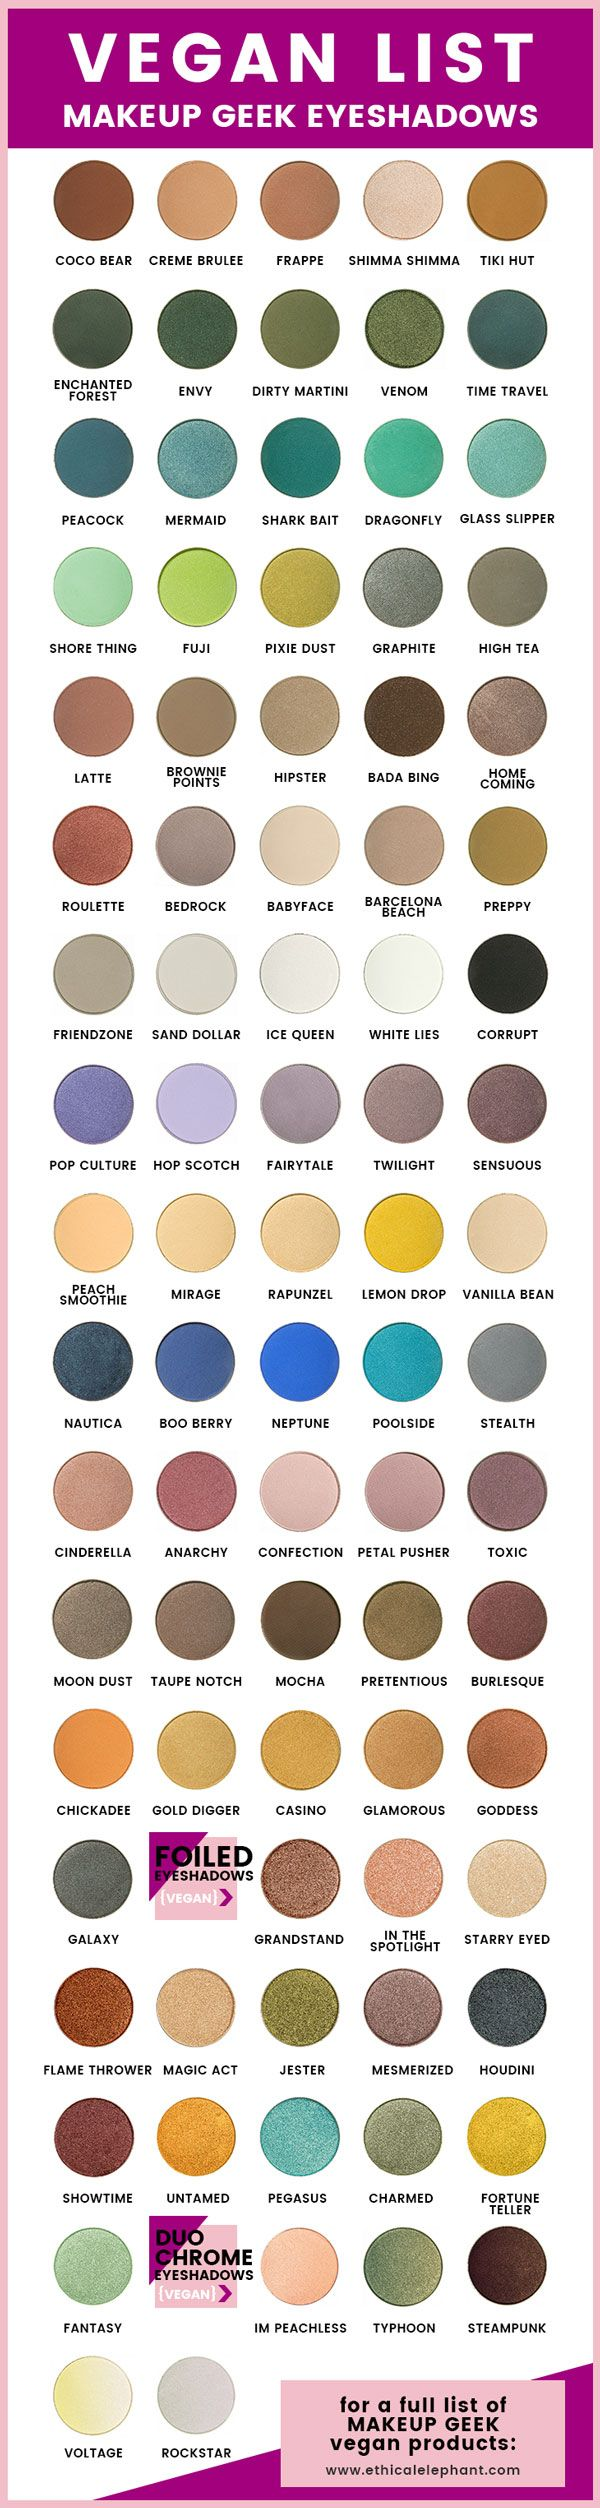 Makeup Geek Vegan Product List [Vicky from www.ethicalelephant.com put together this awesome list! It is so useful! A full list of Makeup Geek's vegan products is available on her site.]